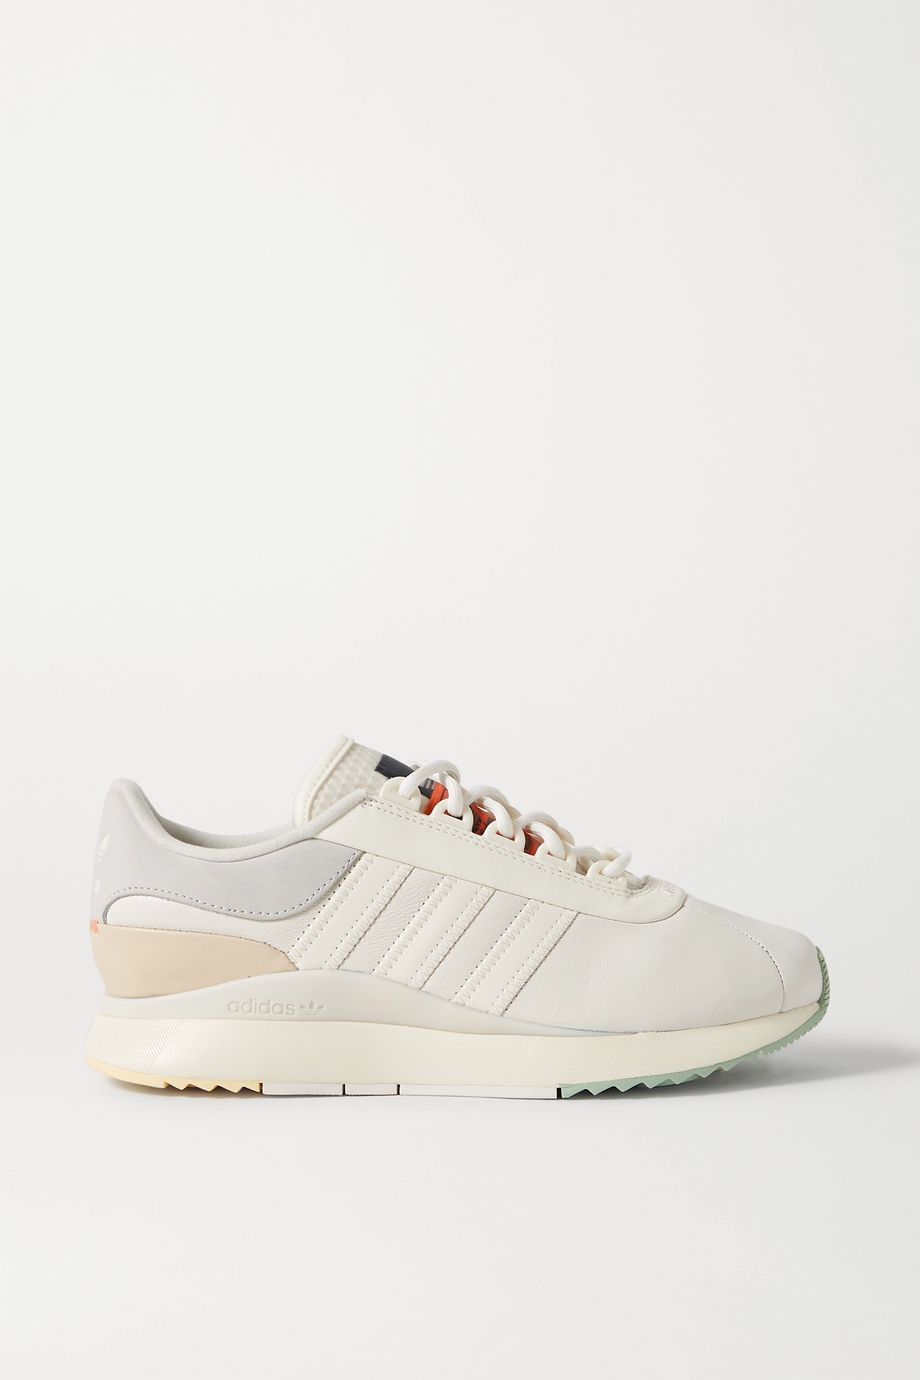 adidas Originals SL Andridge leather and suede sneakers